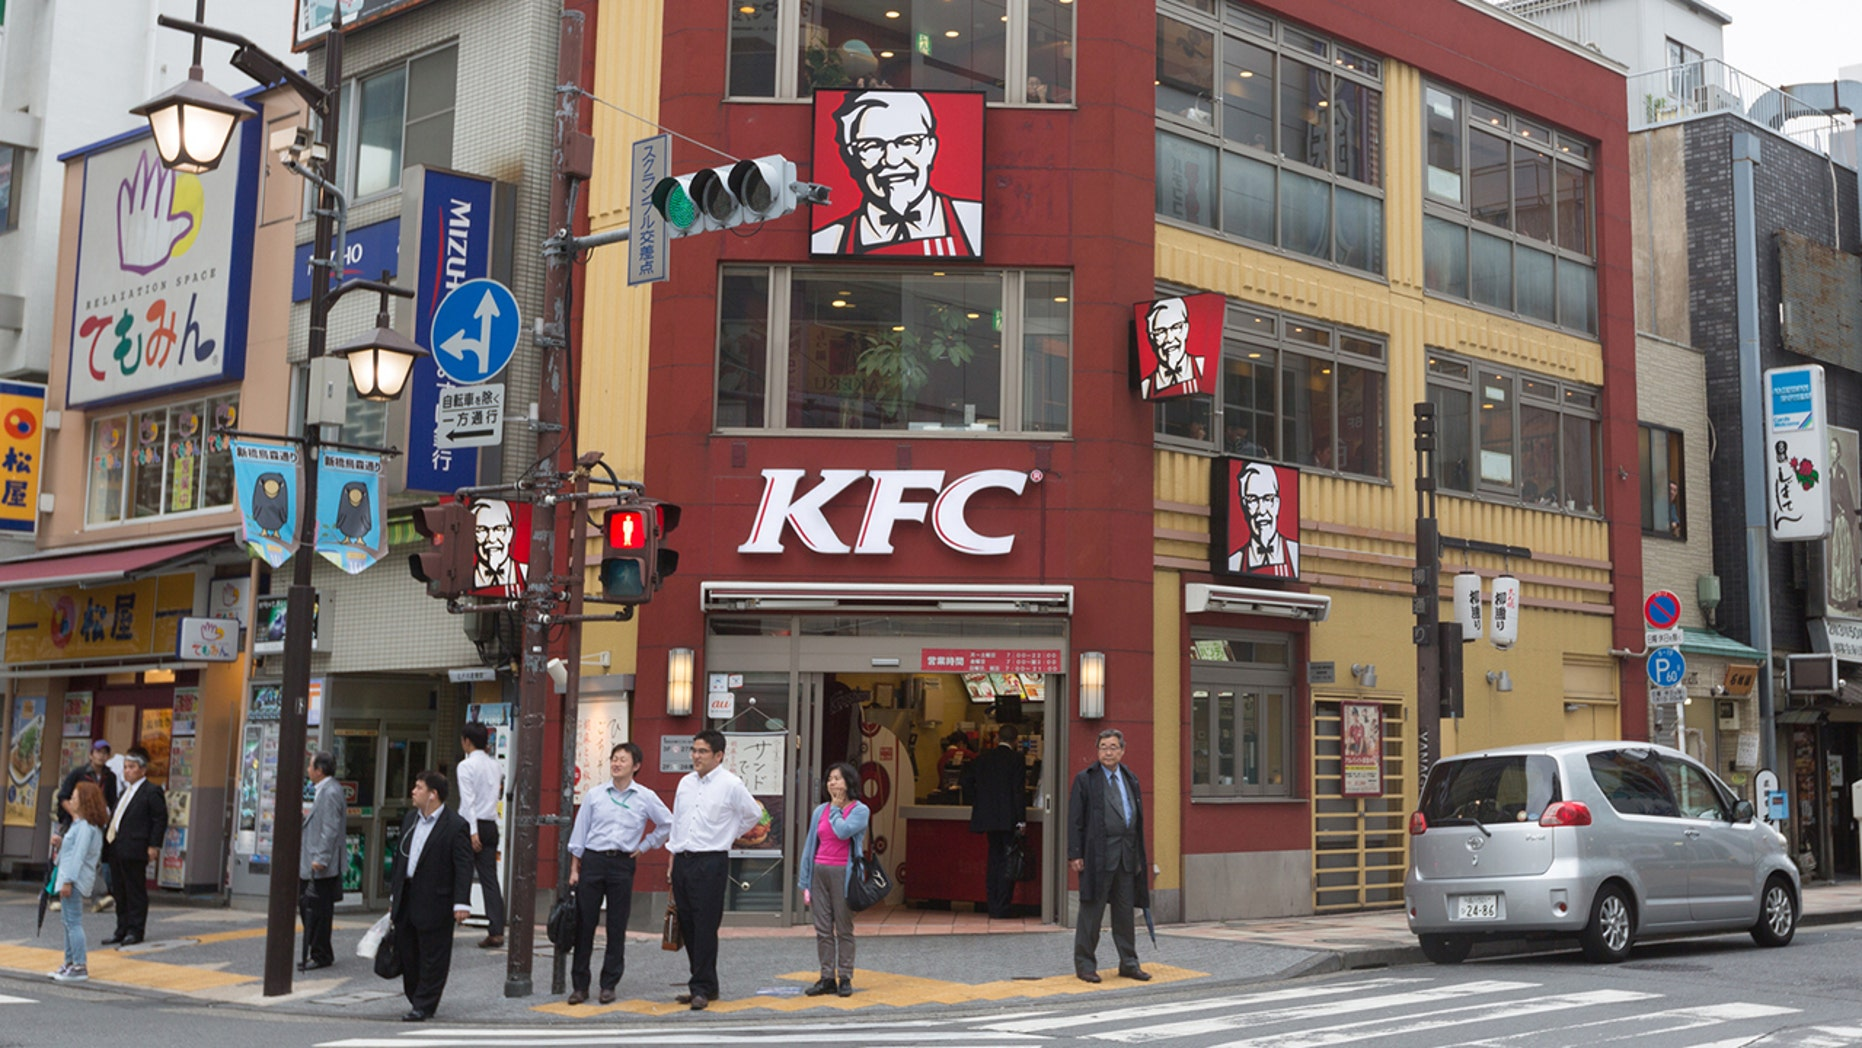 Kfc Japan Christmas.Christmas With Kfc Man Who Popularized Japanese Tradition